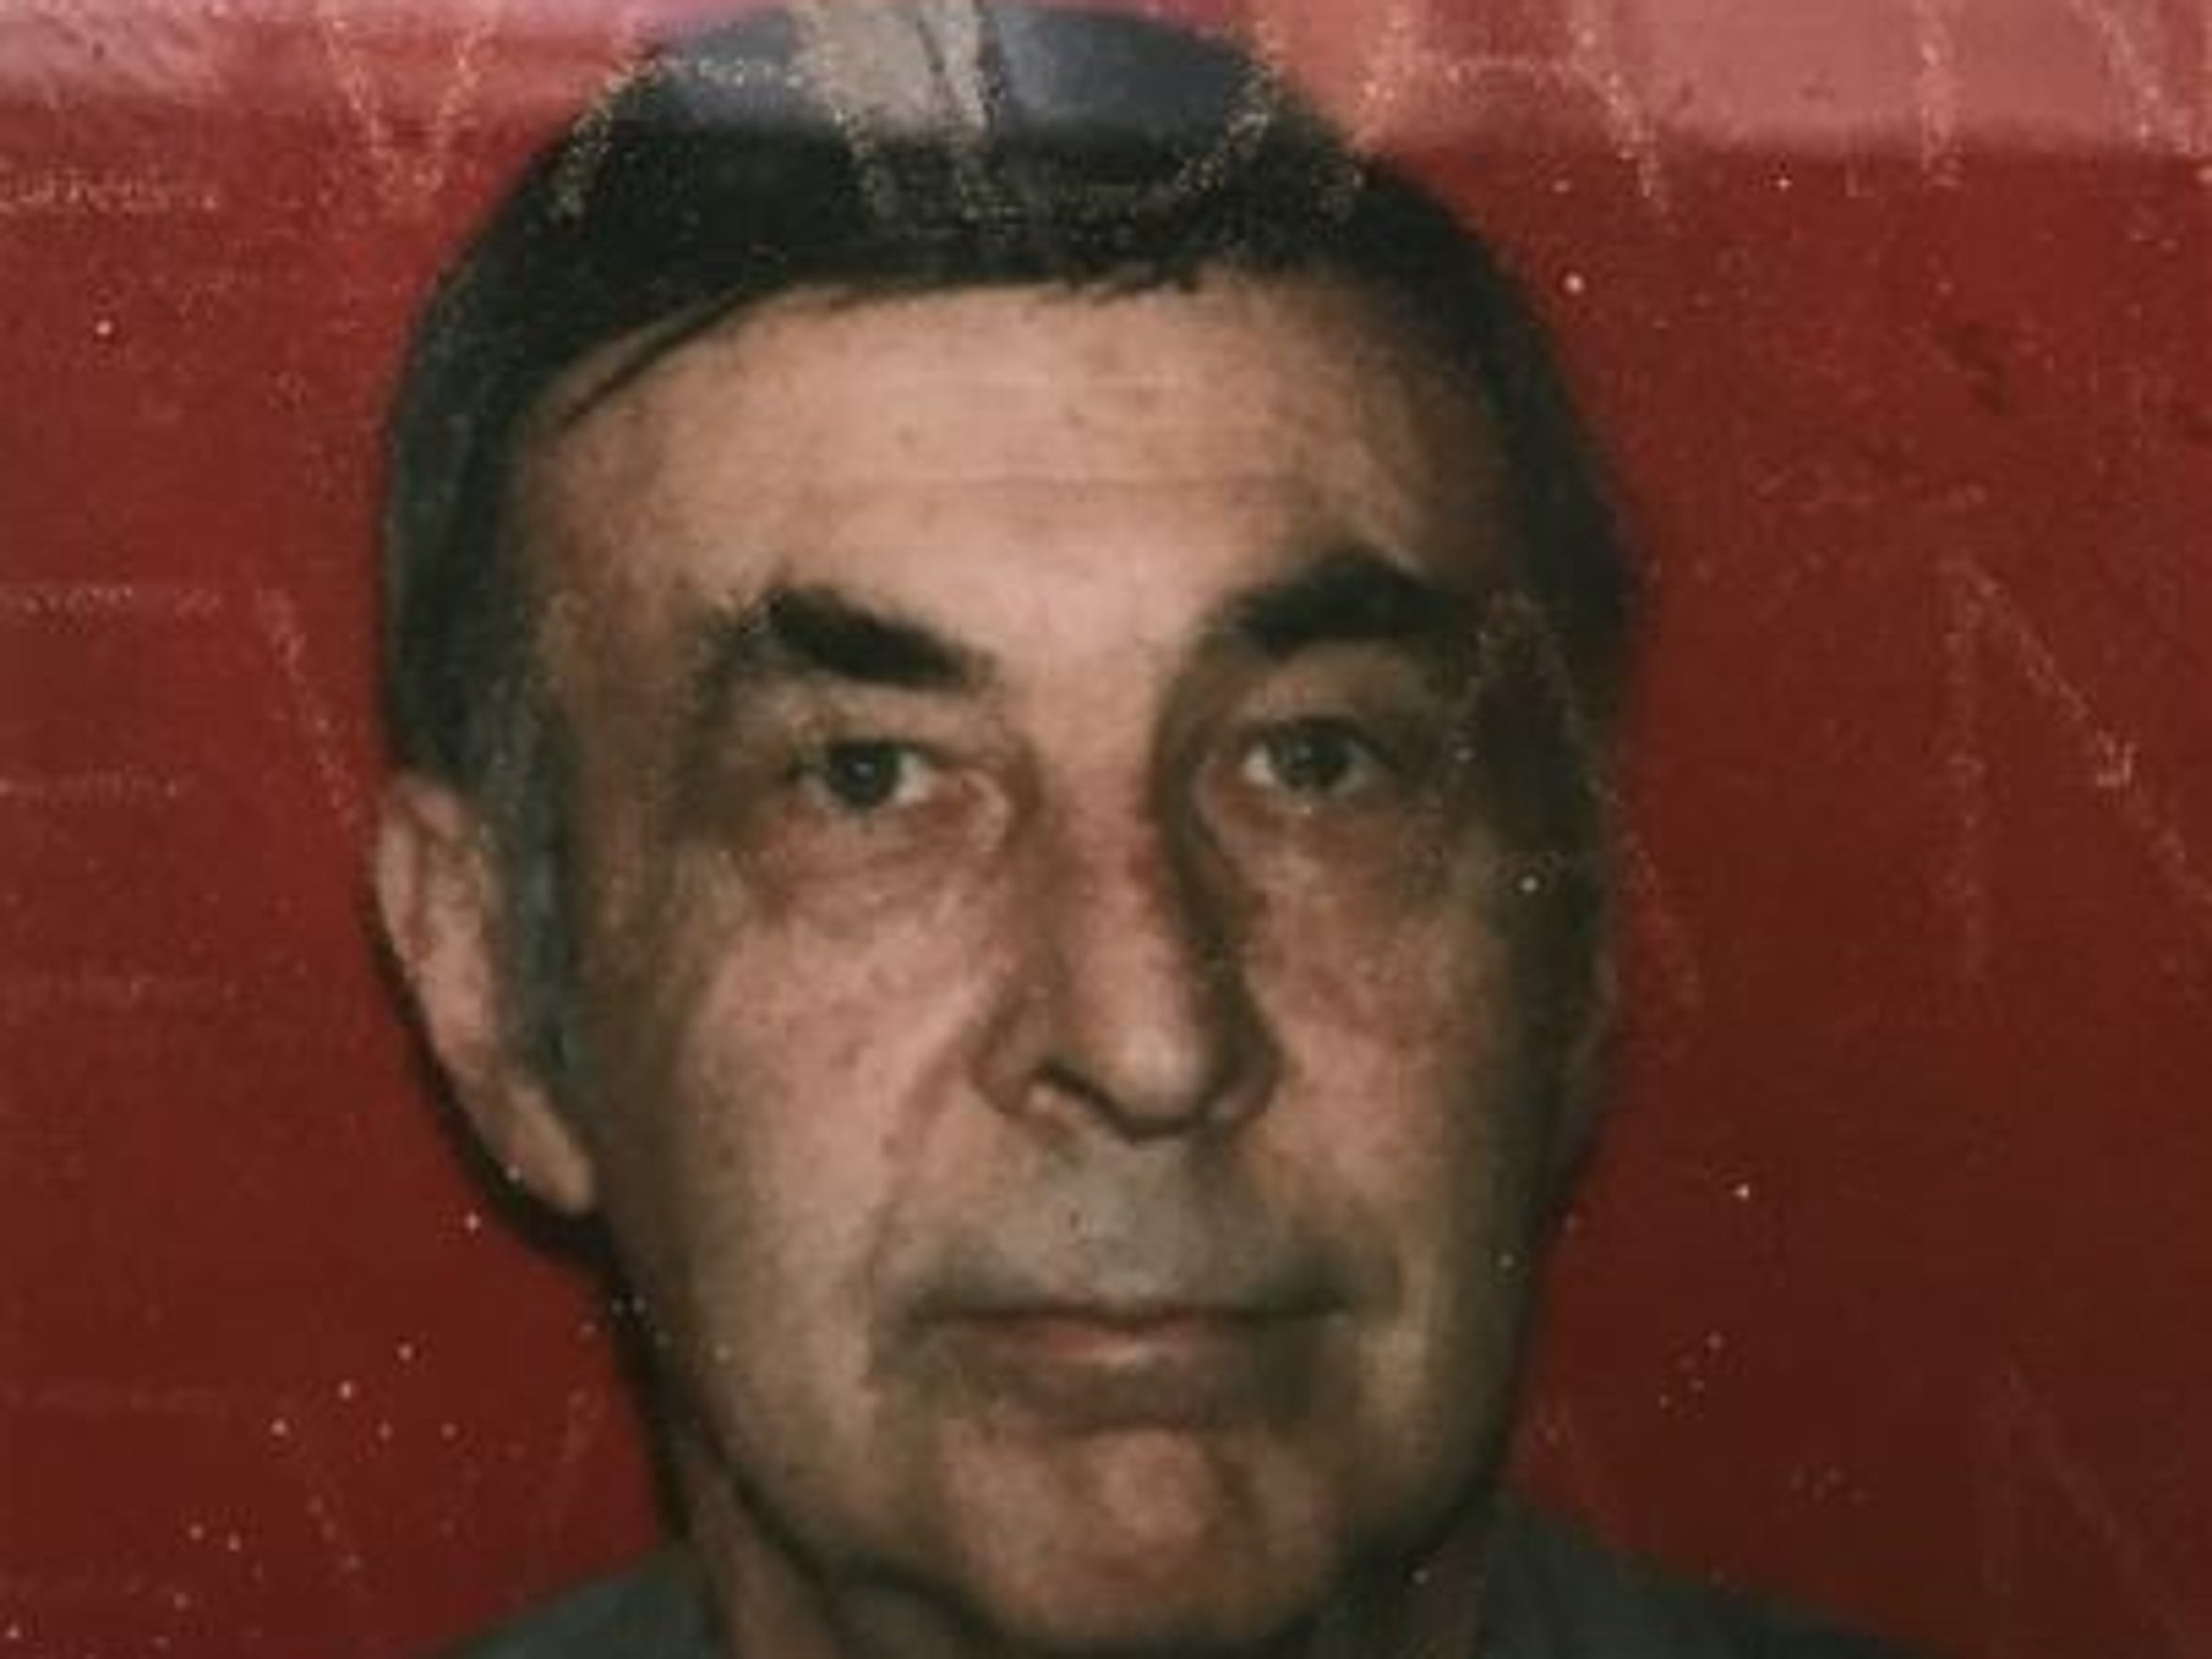 The only photo detectives have of Gene Mortarotti is from his driver's license.